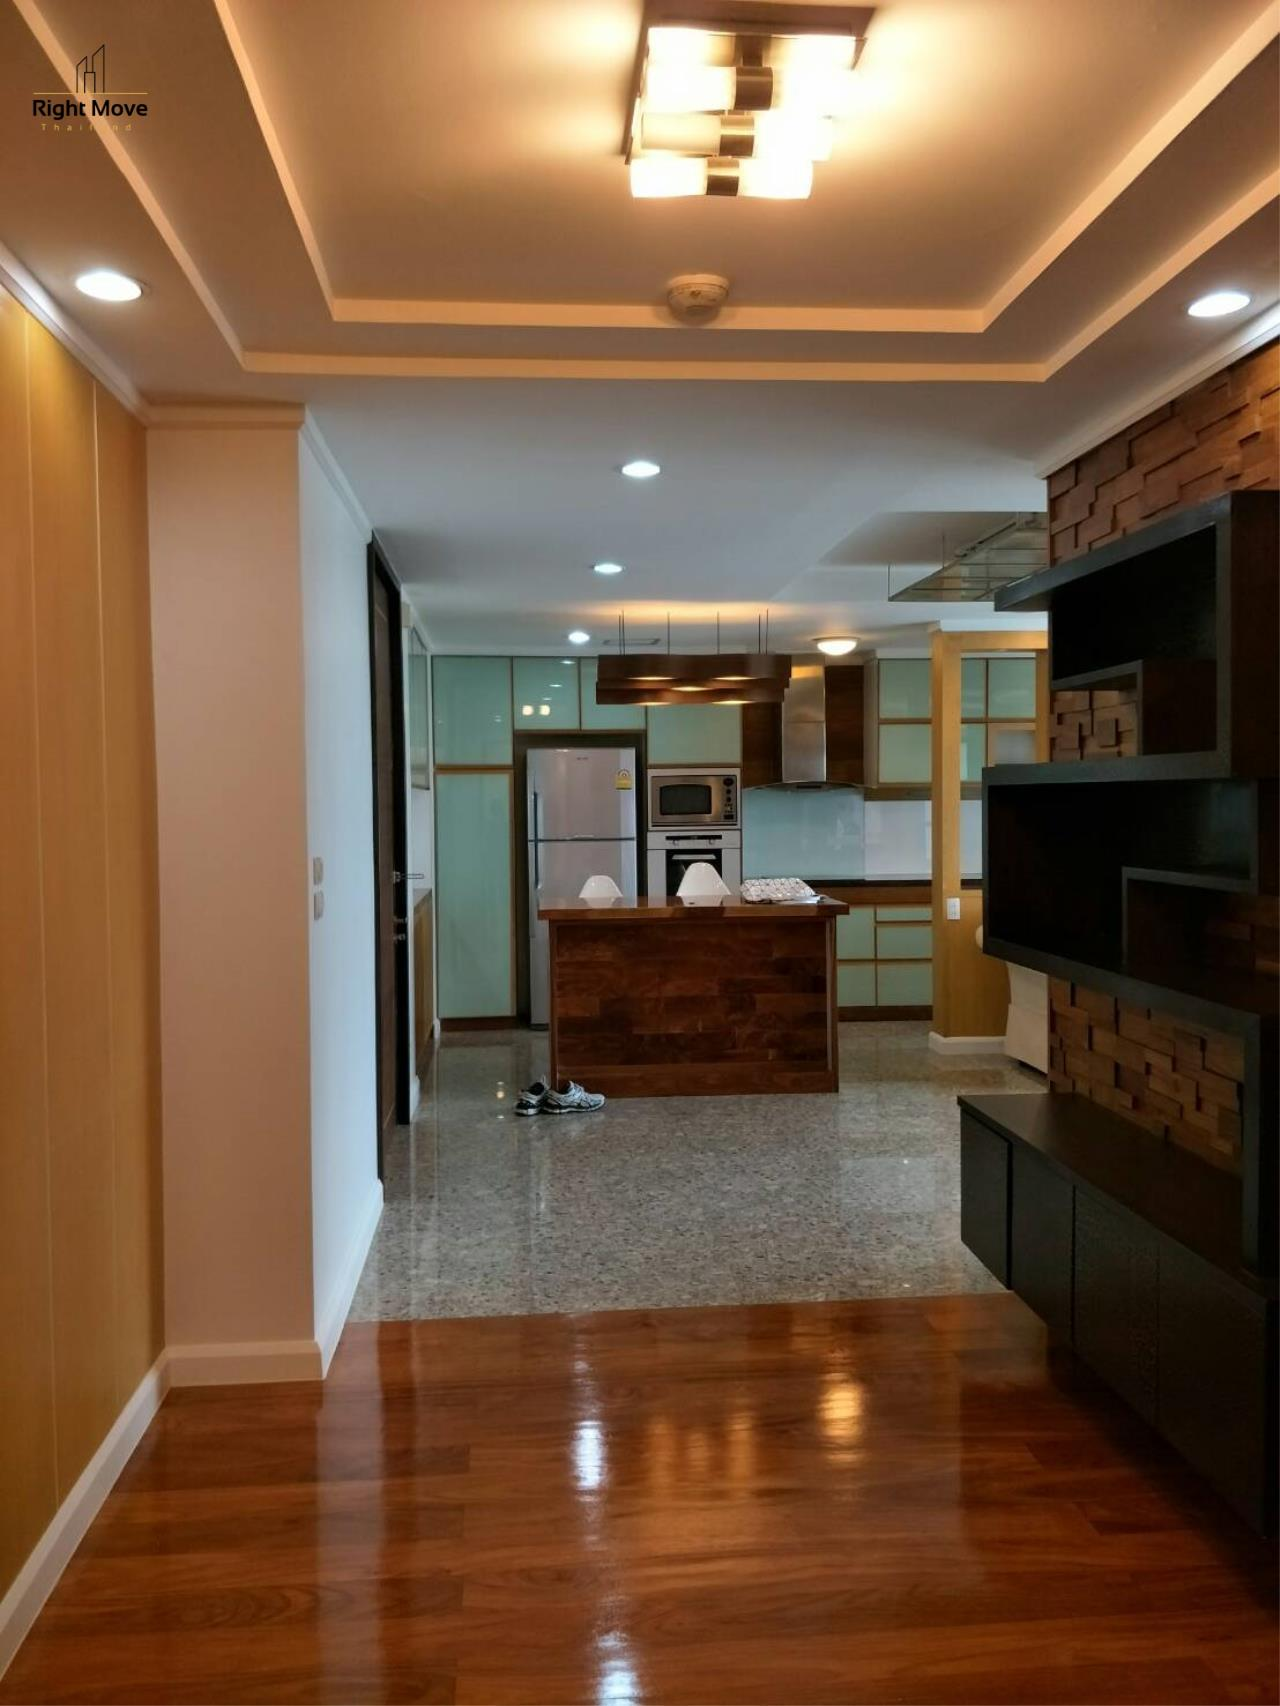 Right Move Thailand Agency's CS2431 Avenue 61 For Sale 14,300,000 THB 2 Bedrooms 102 Sqm 2